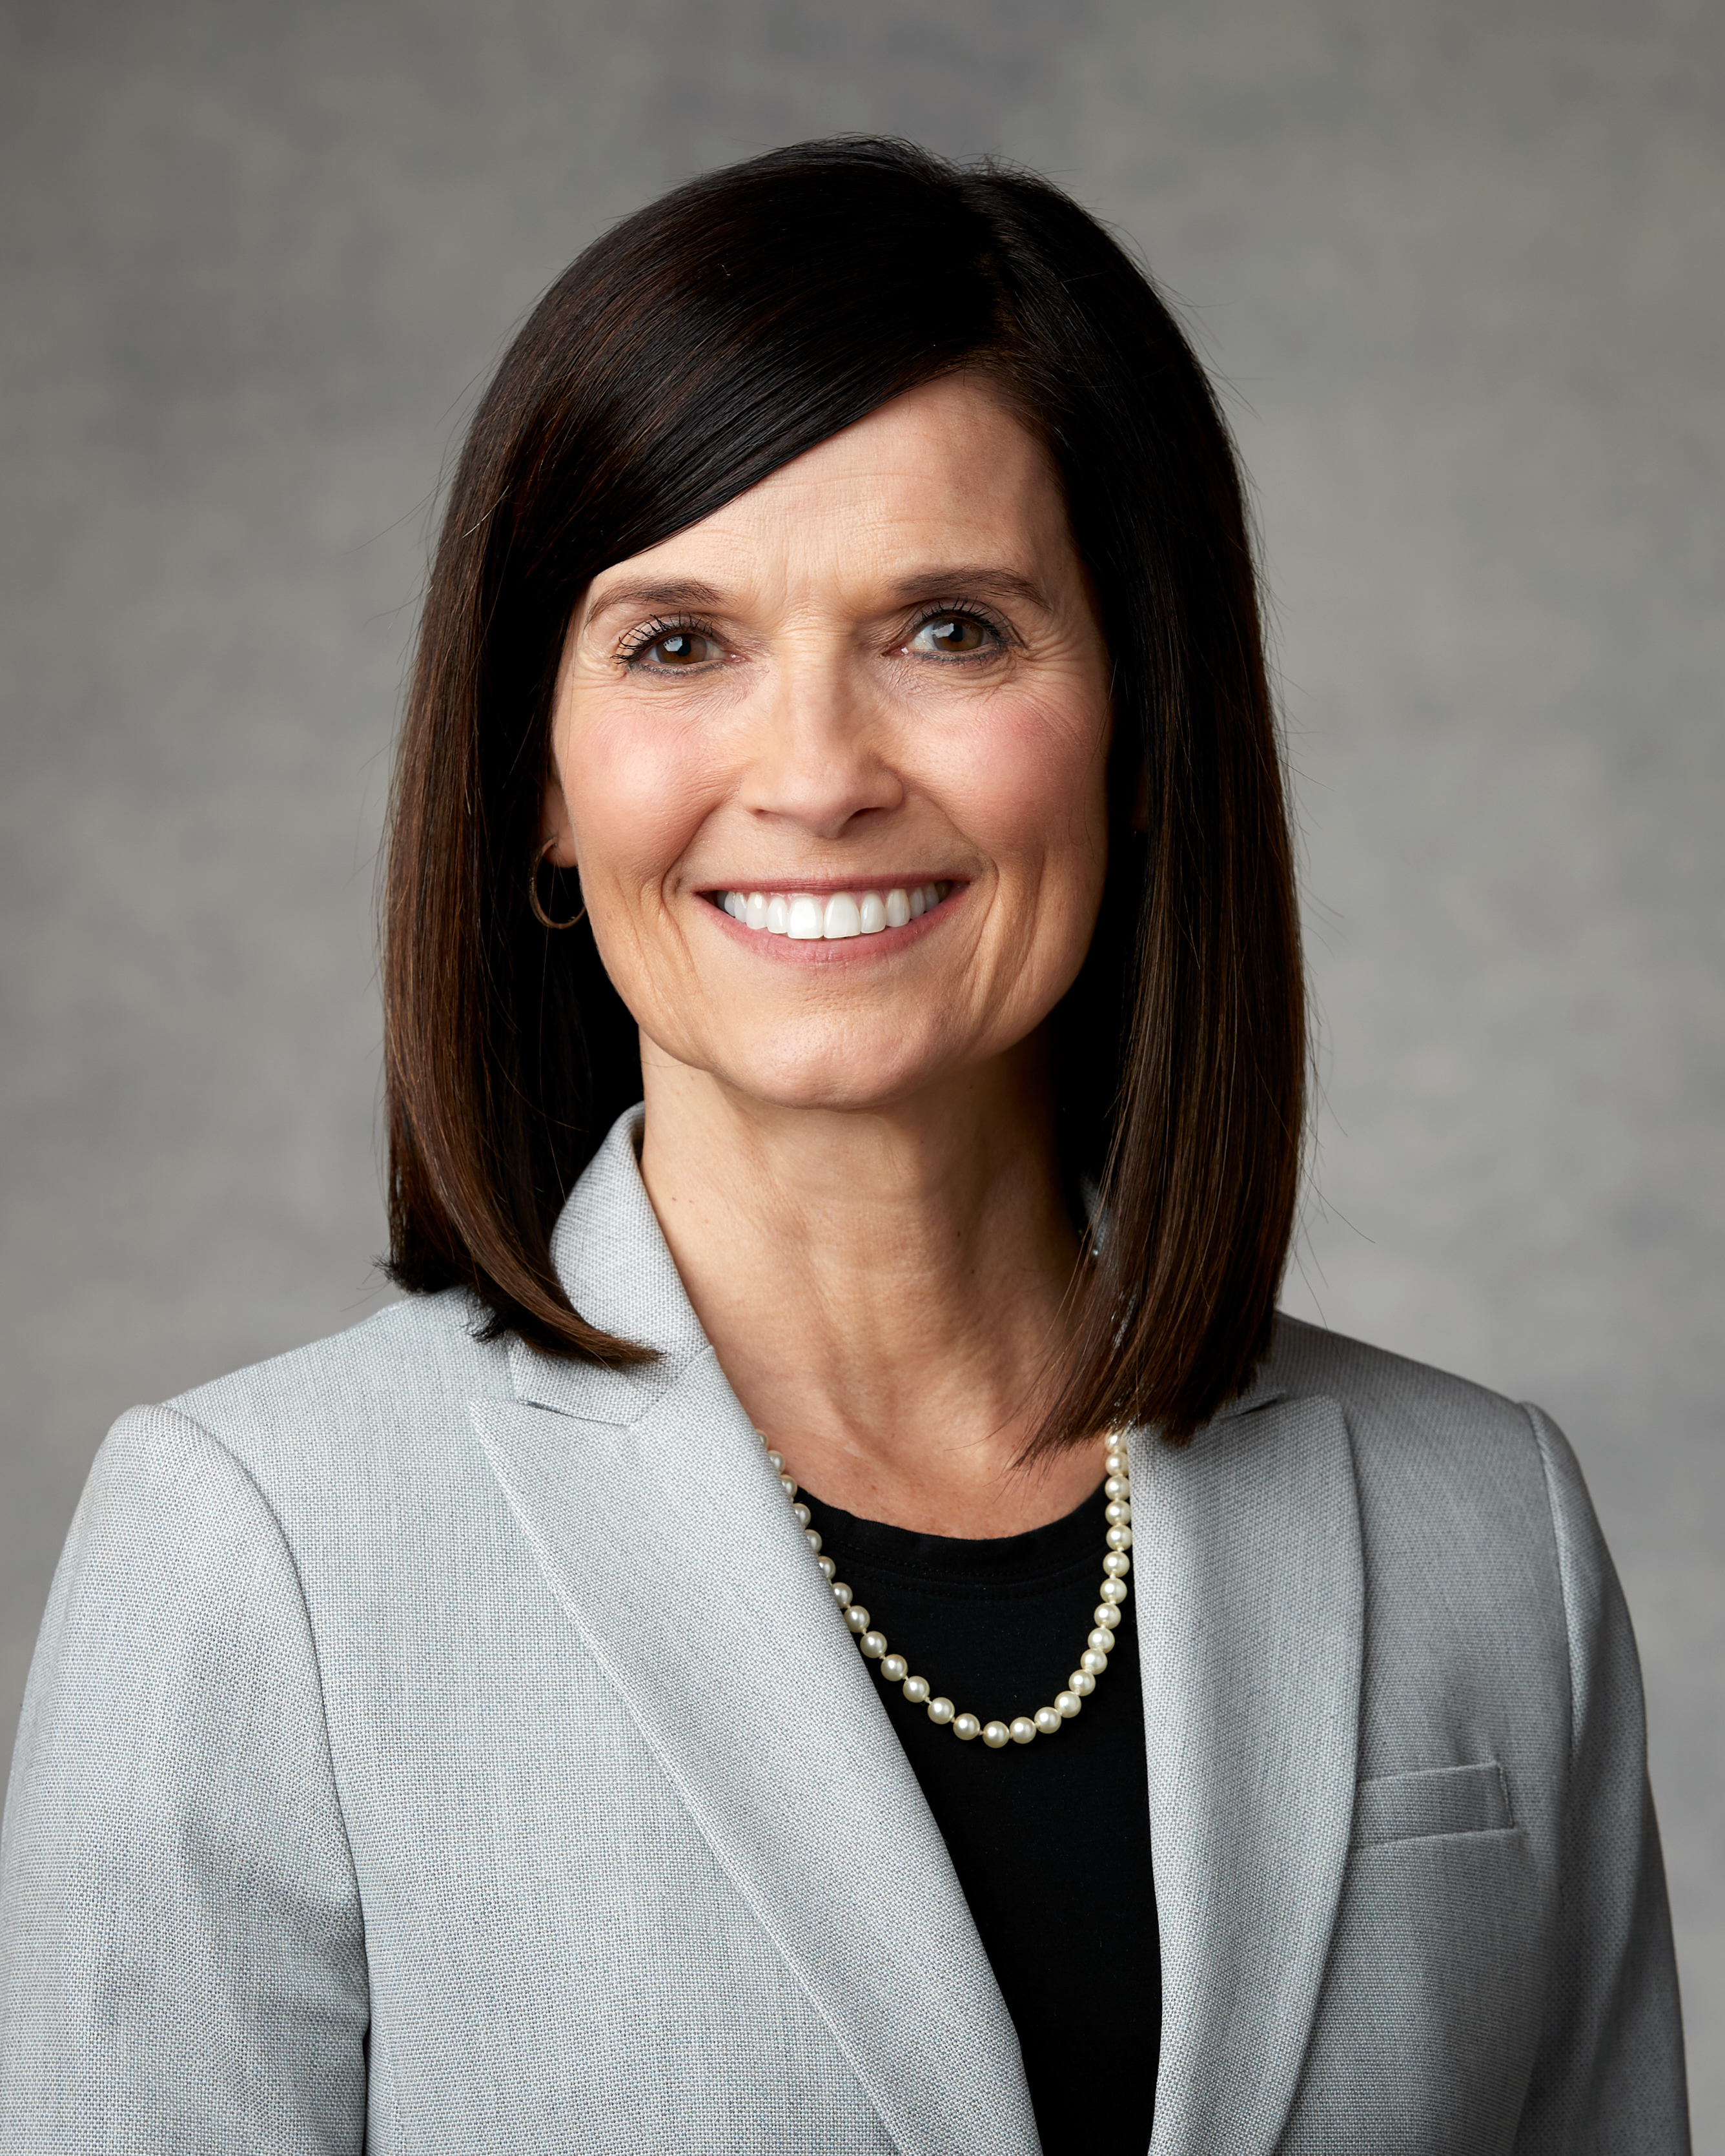 Sister Becky Craven, second counselor in the Young Women general presidency